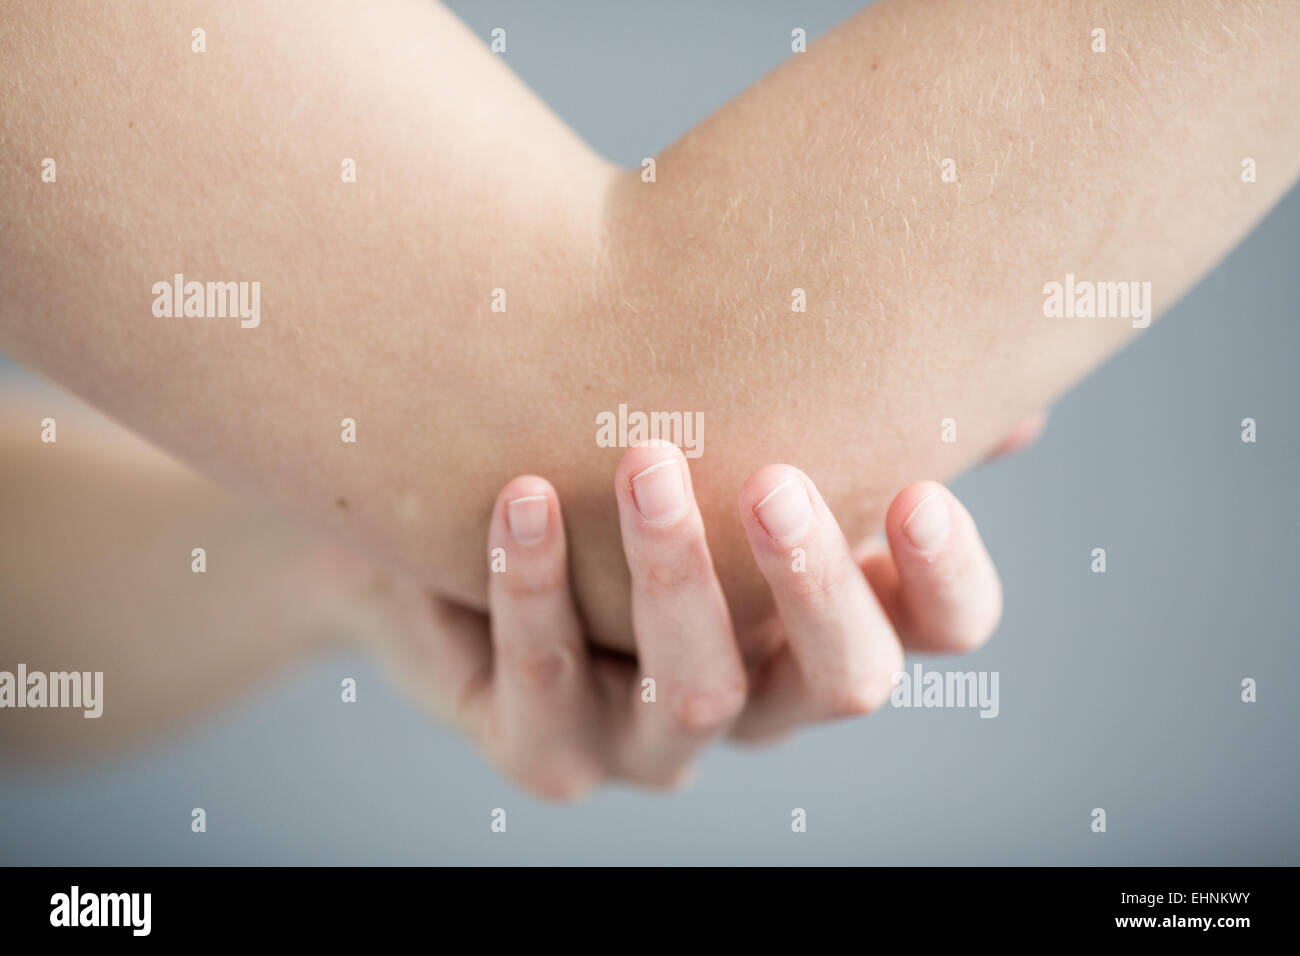 Woman elbow joint pain. - Stock Image